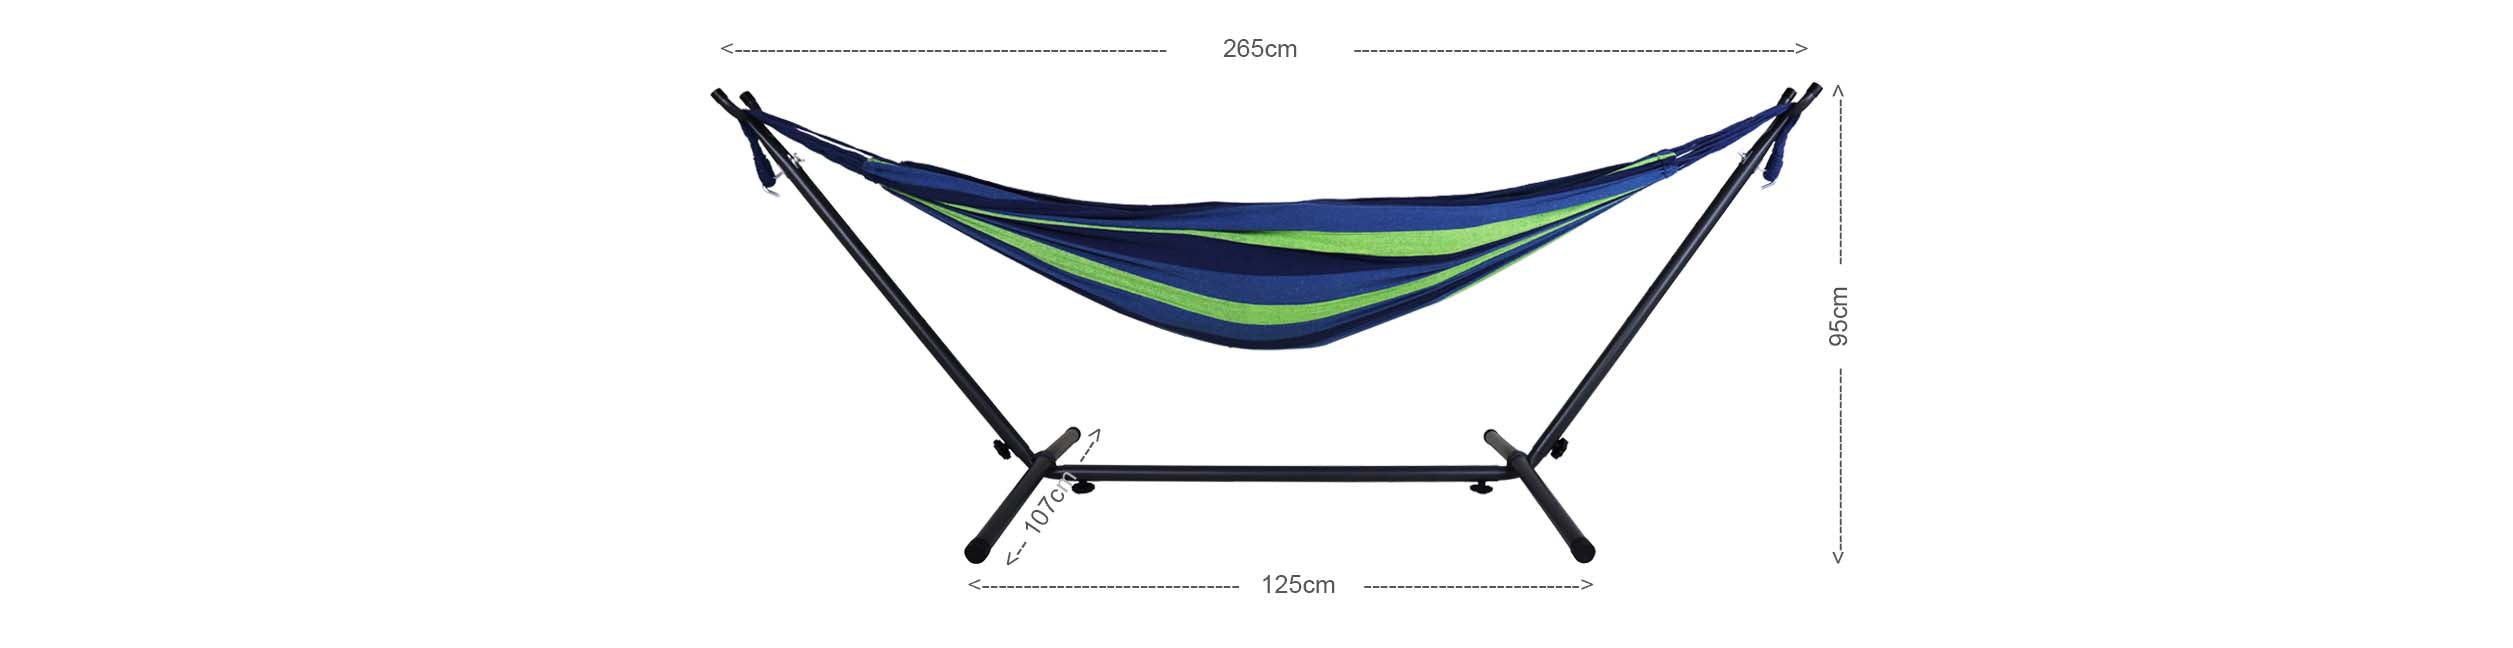 Anderson Calming Desert Hammock with Stand by MOC (OPEN BOX)